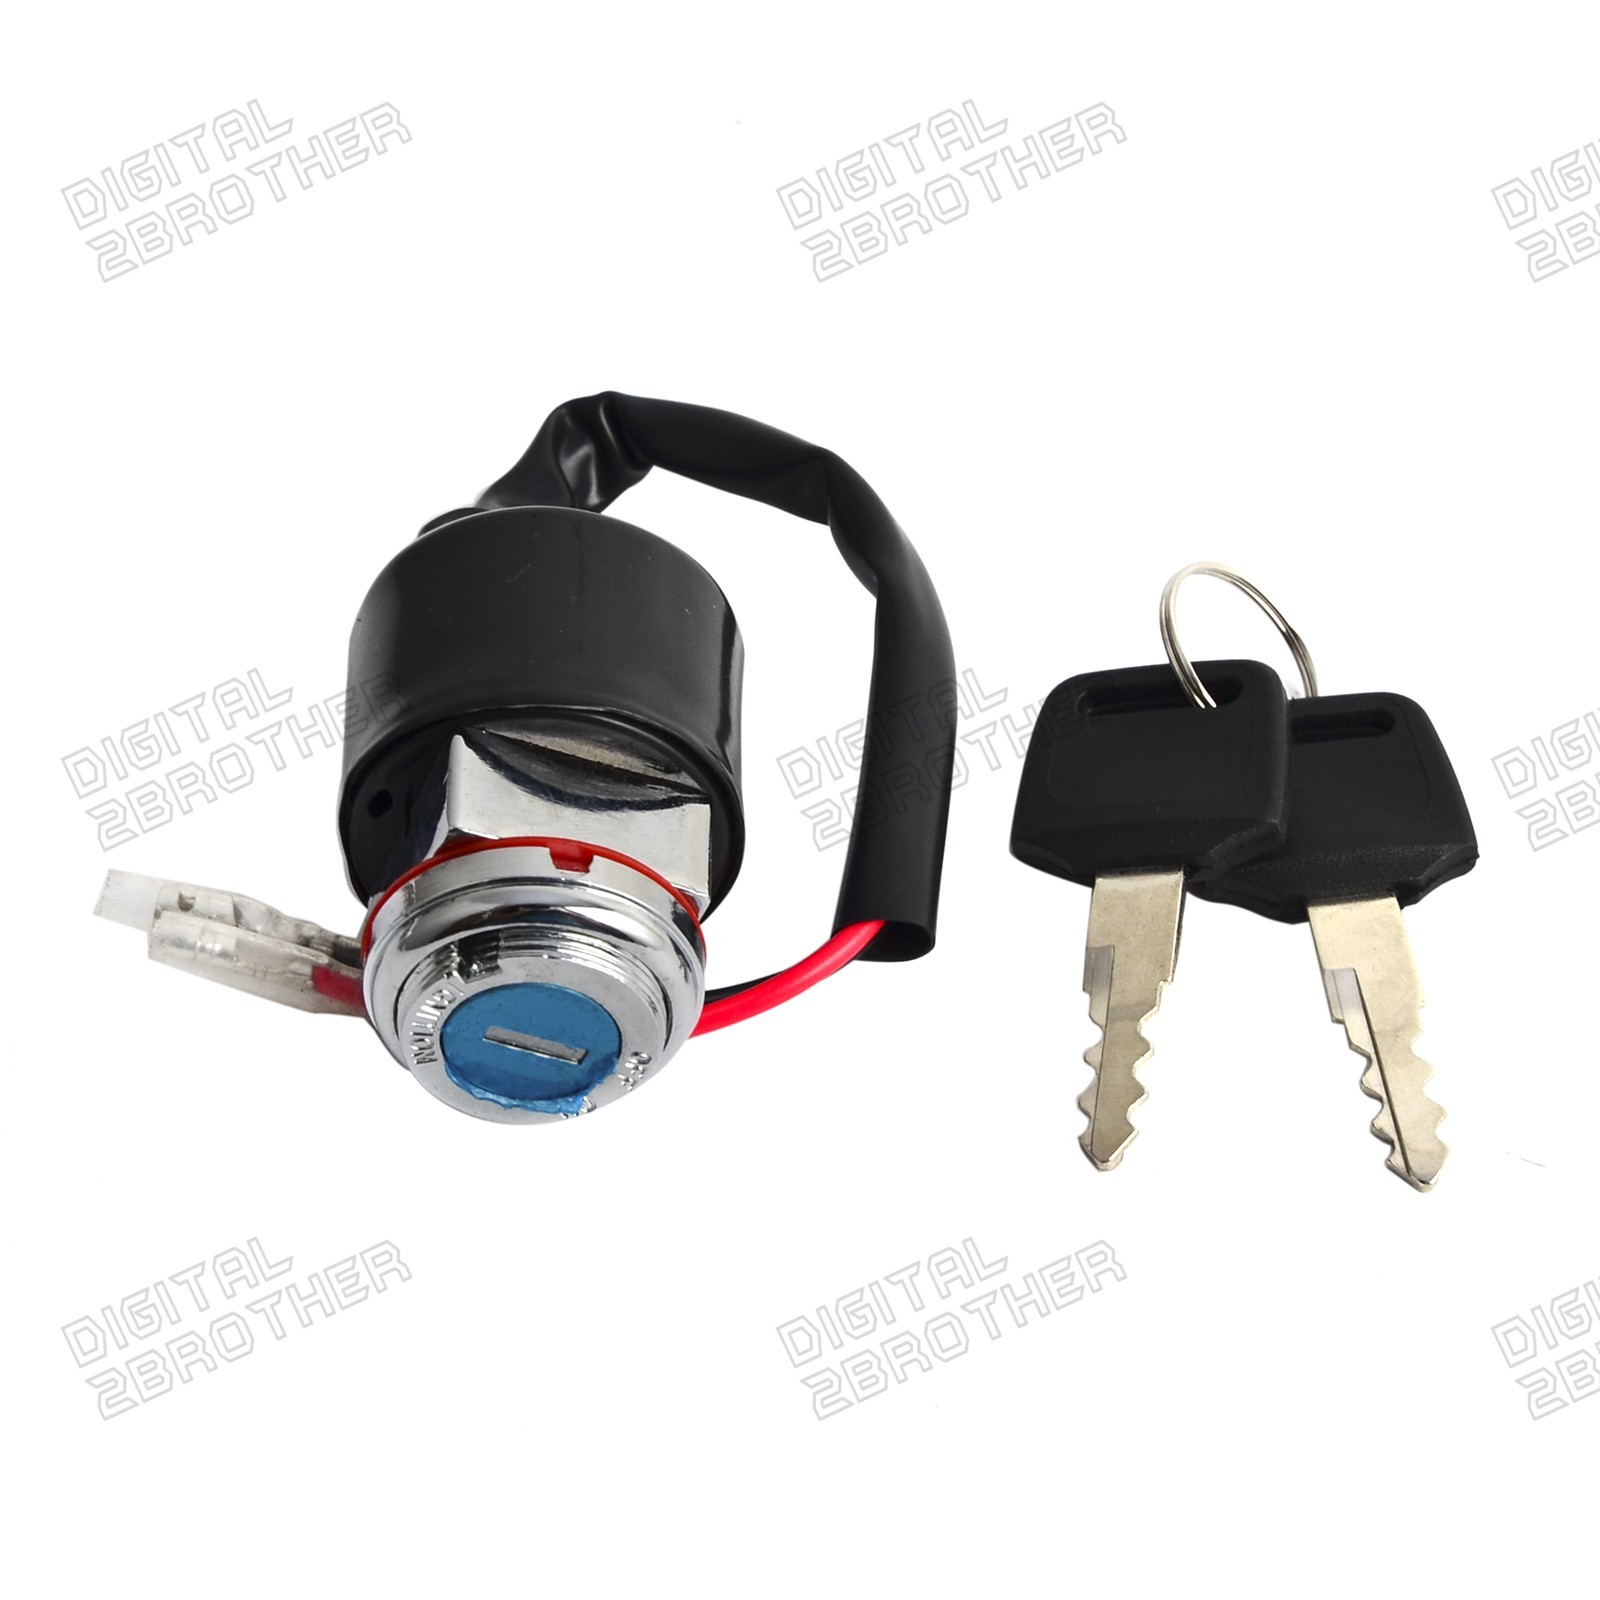 hight resolution of details about ignition key switch 2 wires kit for honda cl 100s 70 73 cl125s 73 74 cl70 70 72